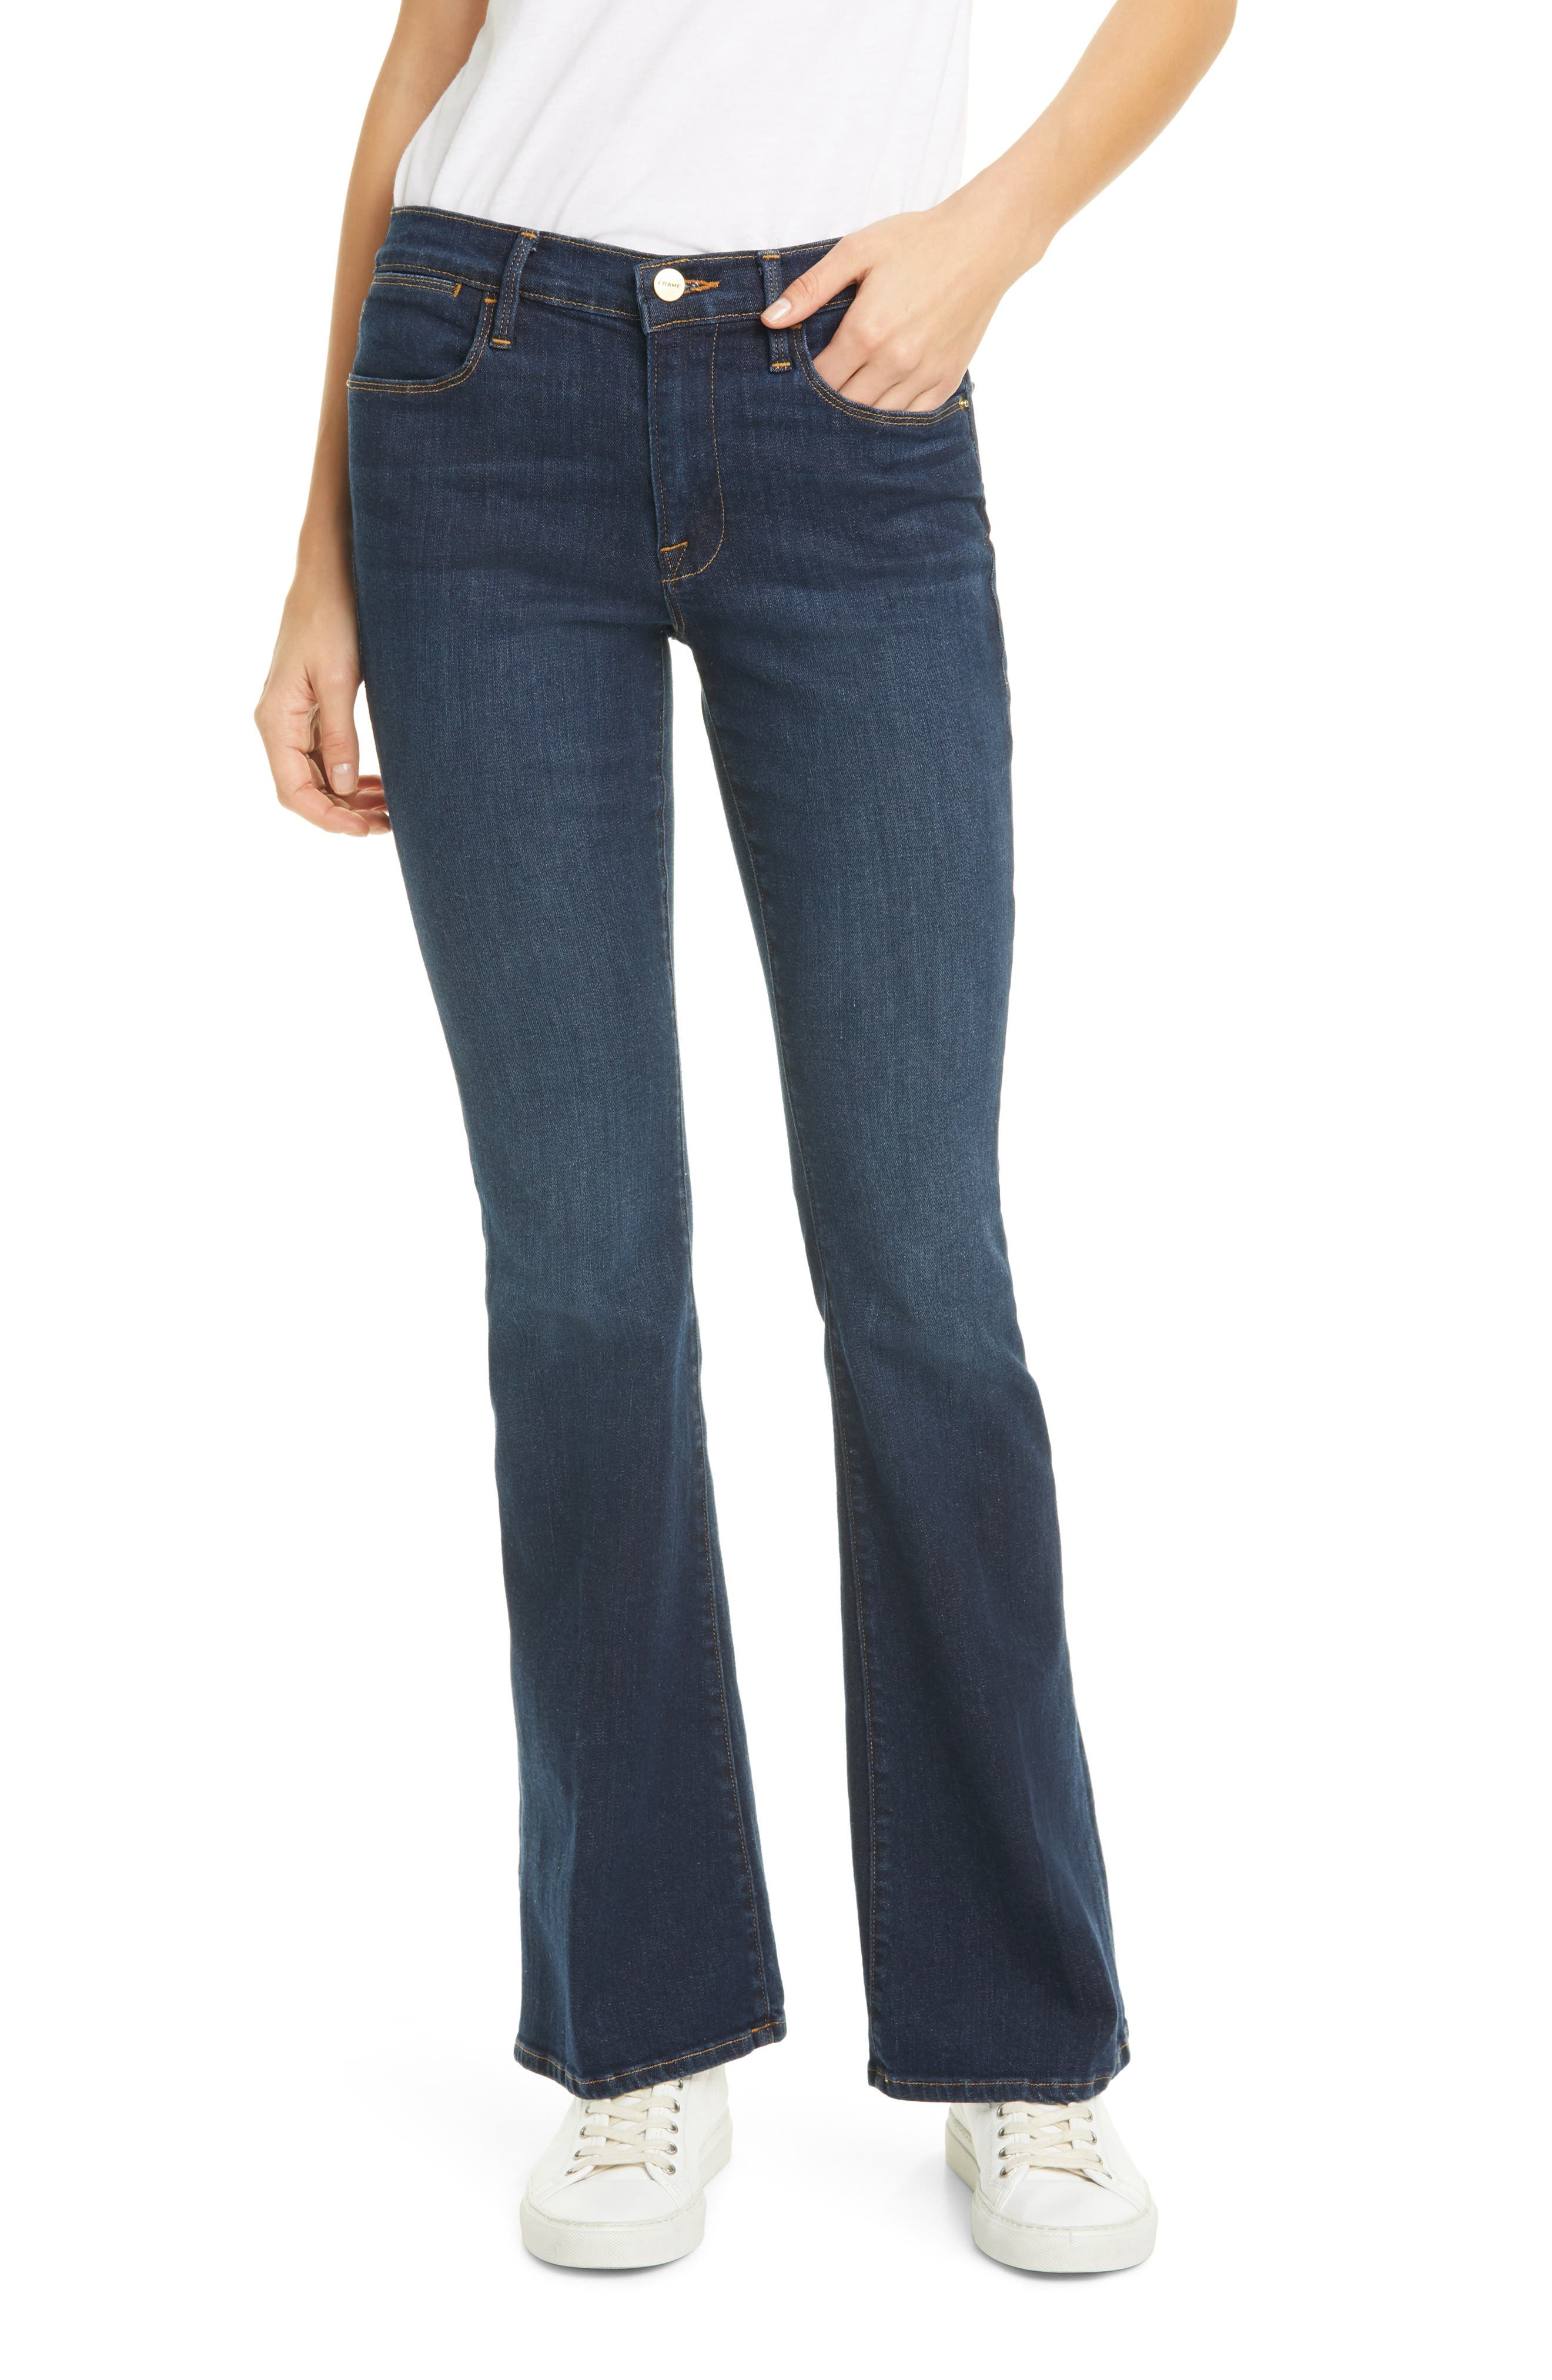 Petite Women's Frame Le Pixie High Waist Flare Jeans